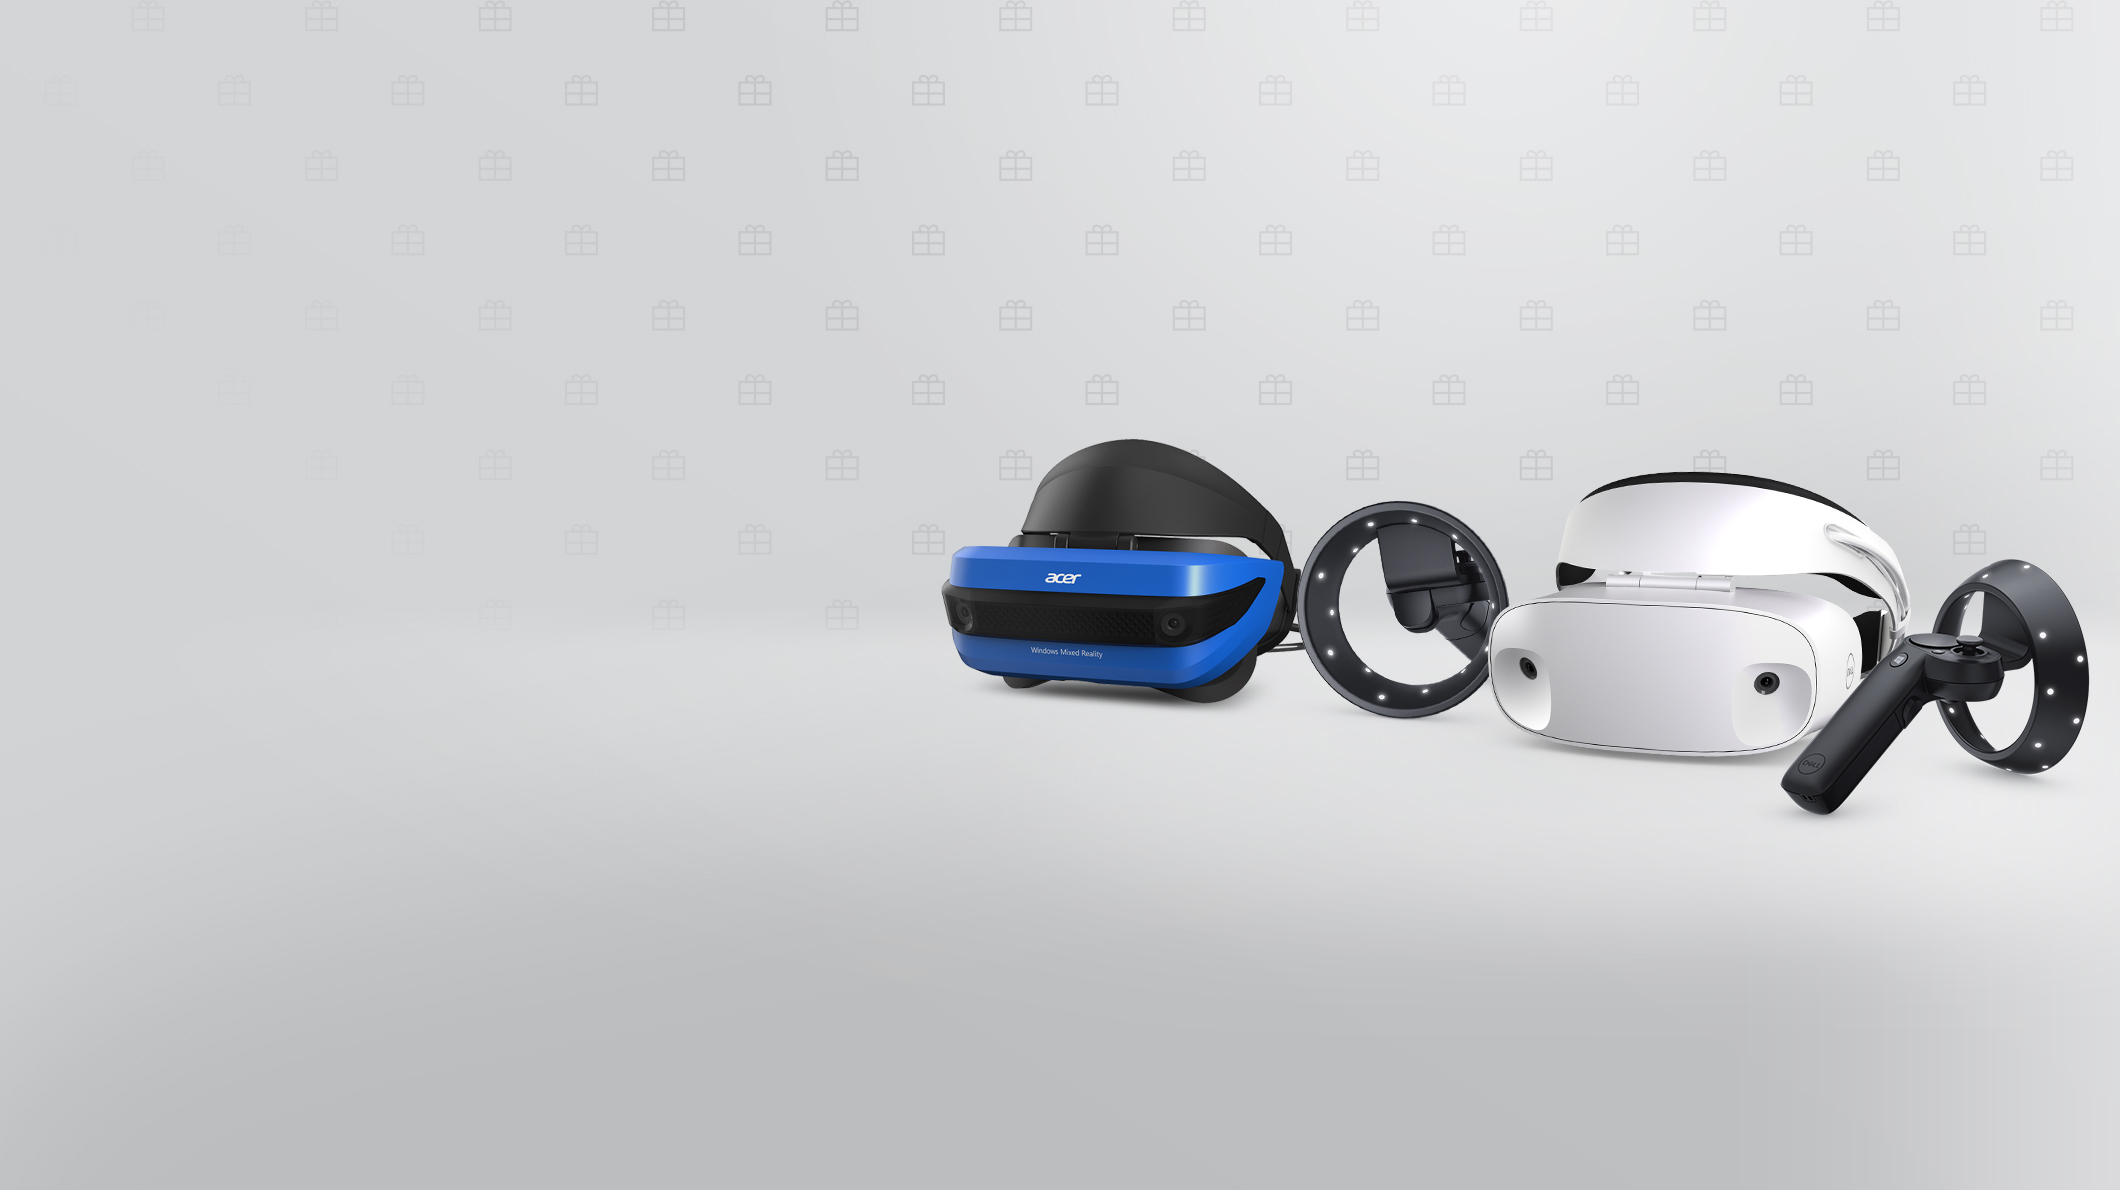 Windows Mixed Reality headsets and motion controllers